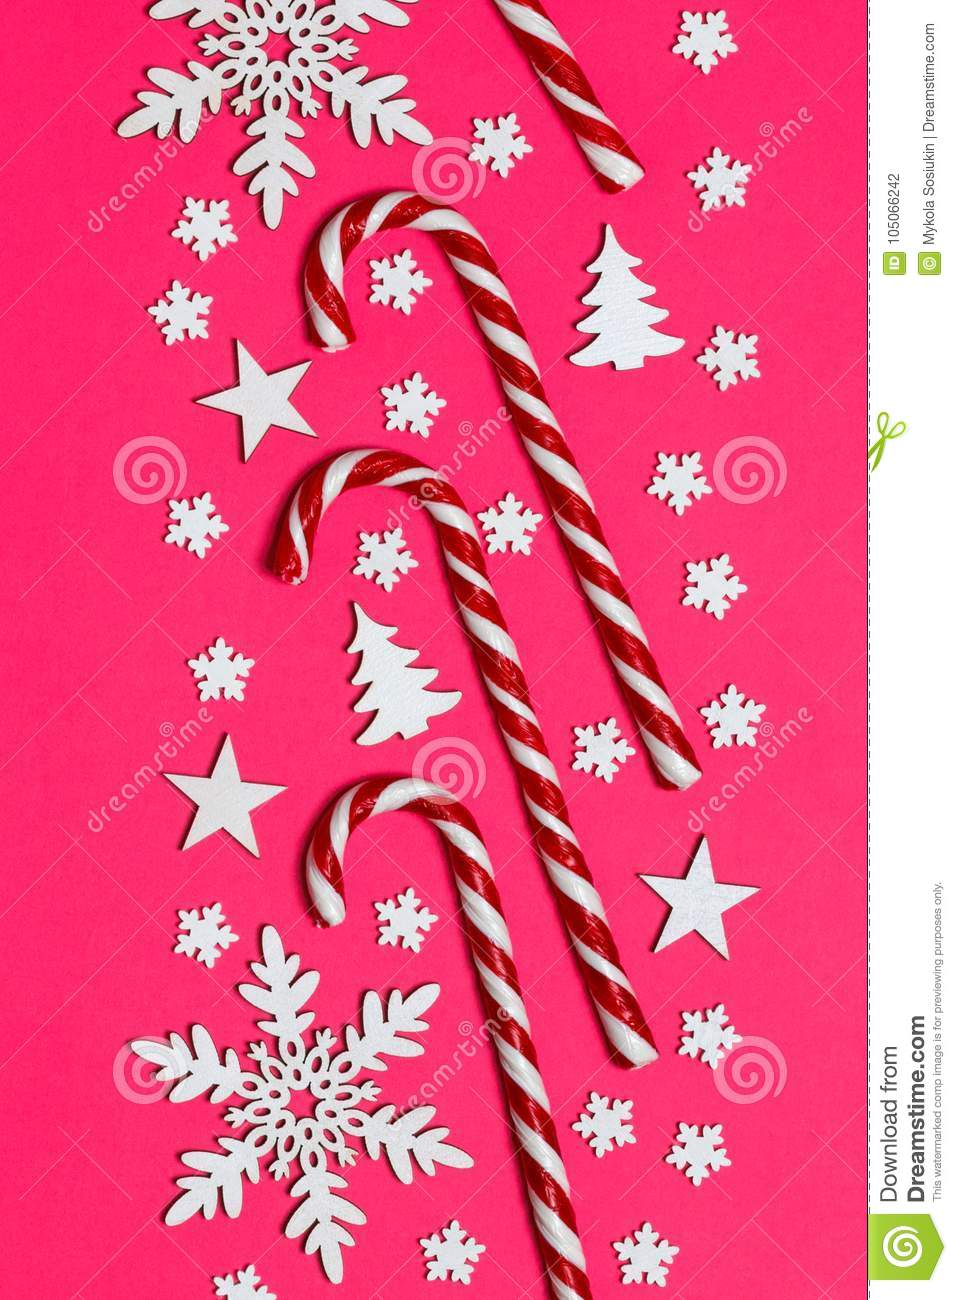 Christmas candy cane lied evenly in row on pink background with decorative snowflake and star. Flat lay and top view